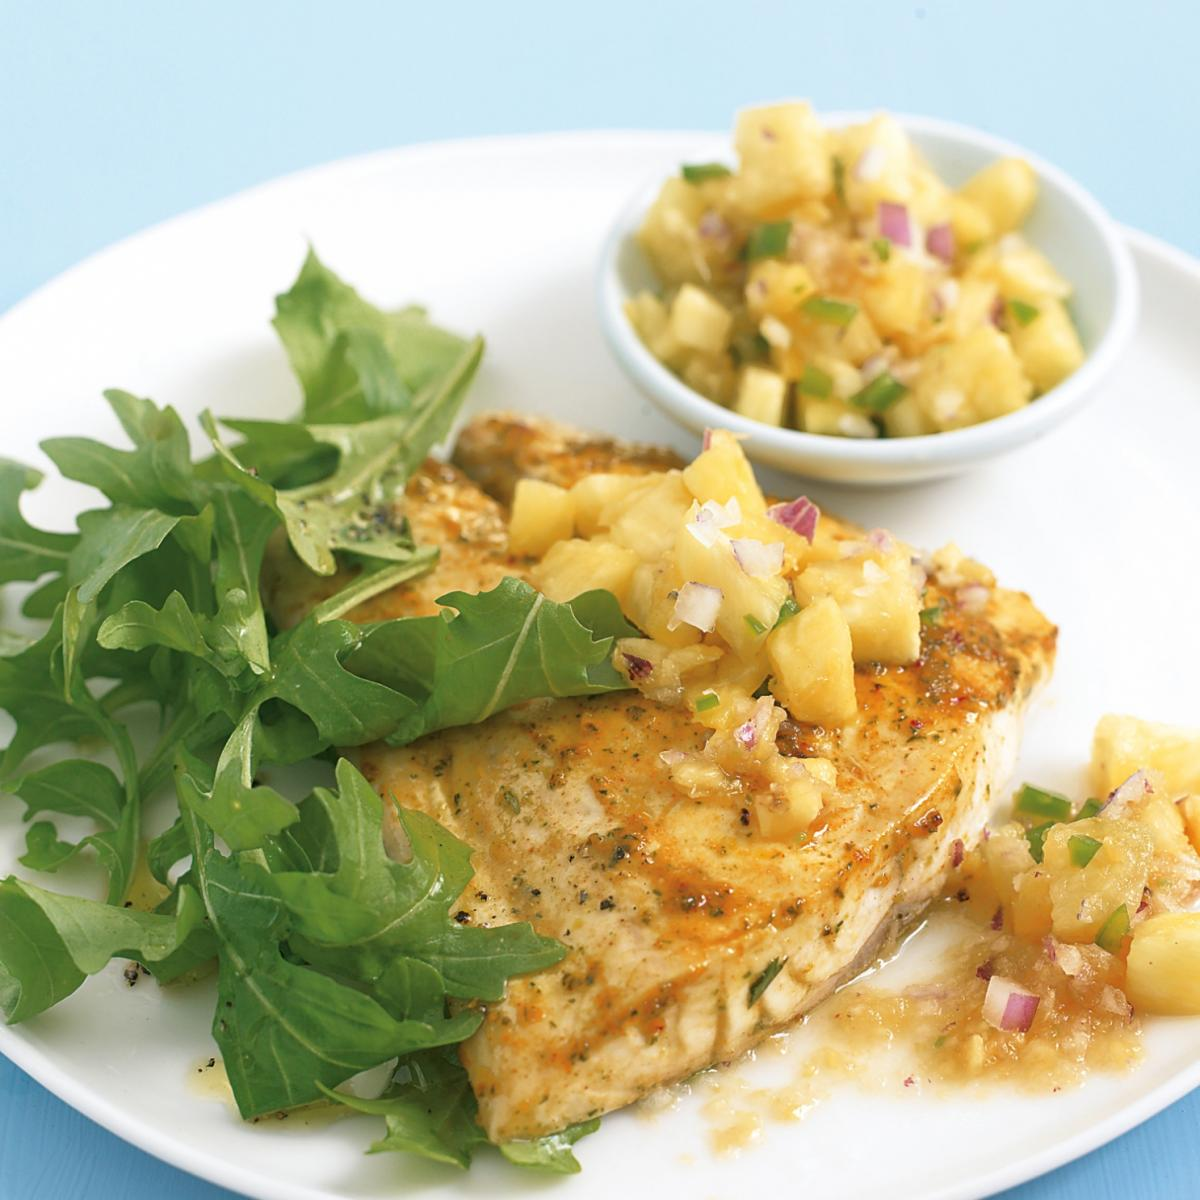 A picture of Delia's Moroccan Grilled Fish with Pineapple Salsa recipe